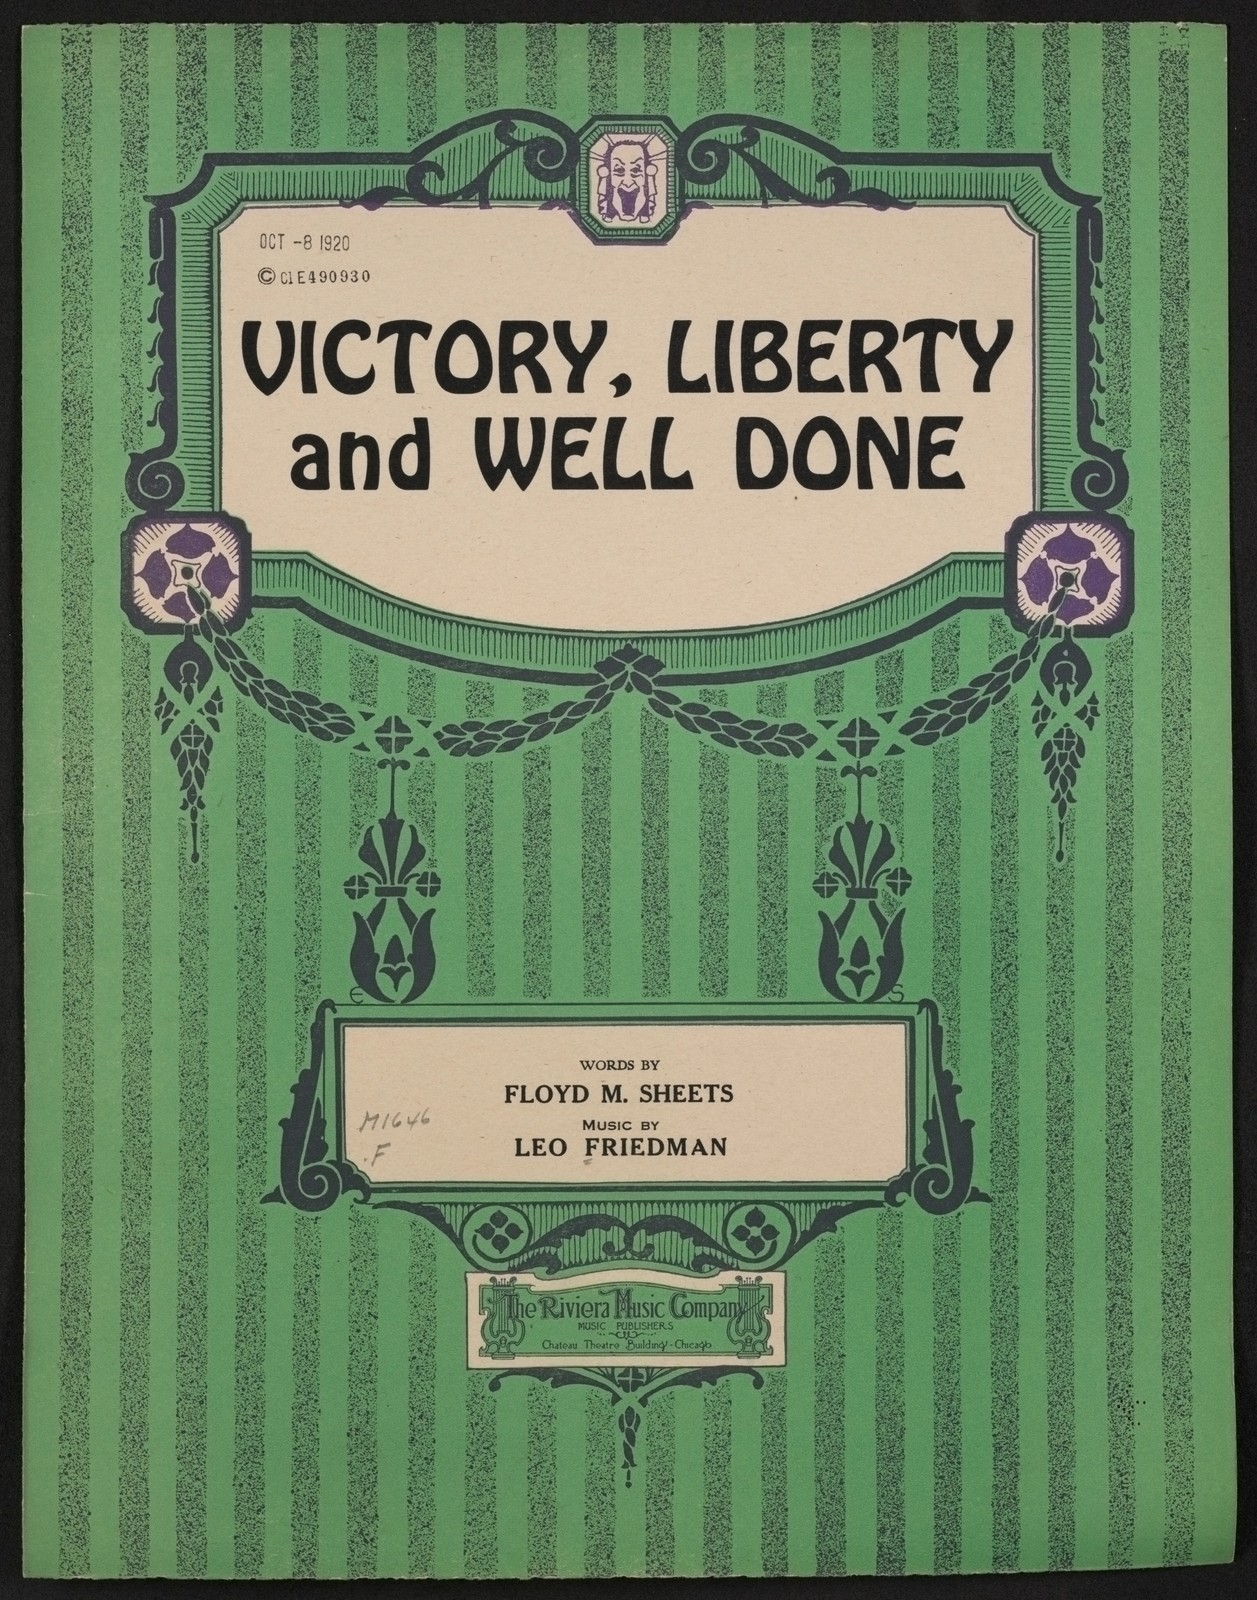 Victory, liberty, and well done